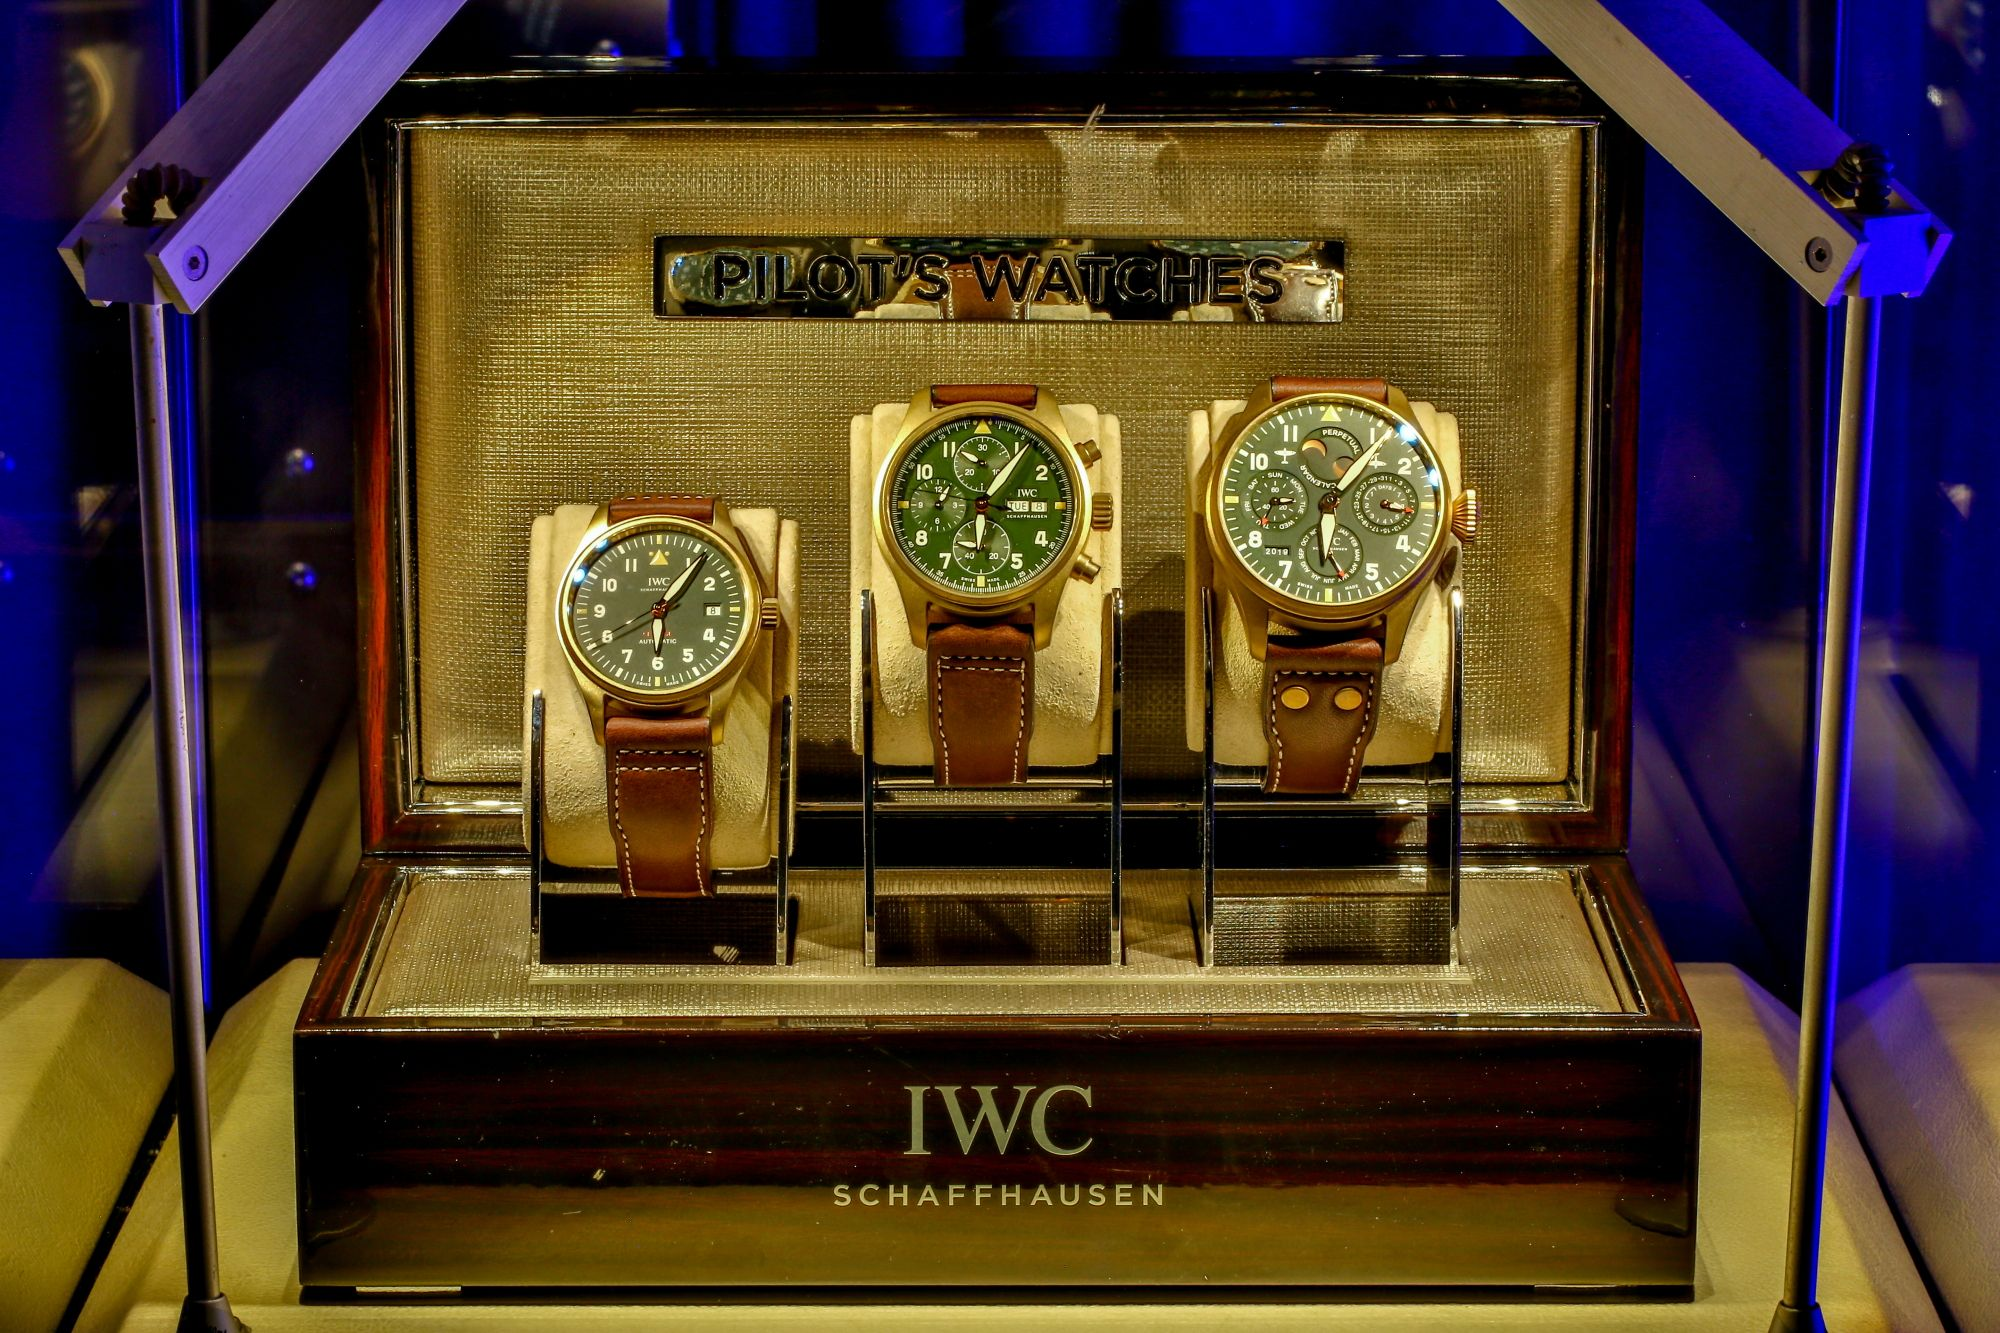 IWC Schaffhausen Launches Its New Pilot's Watches In The PH